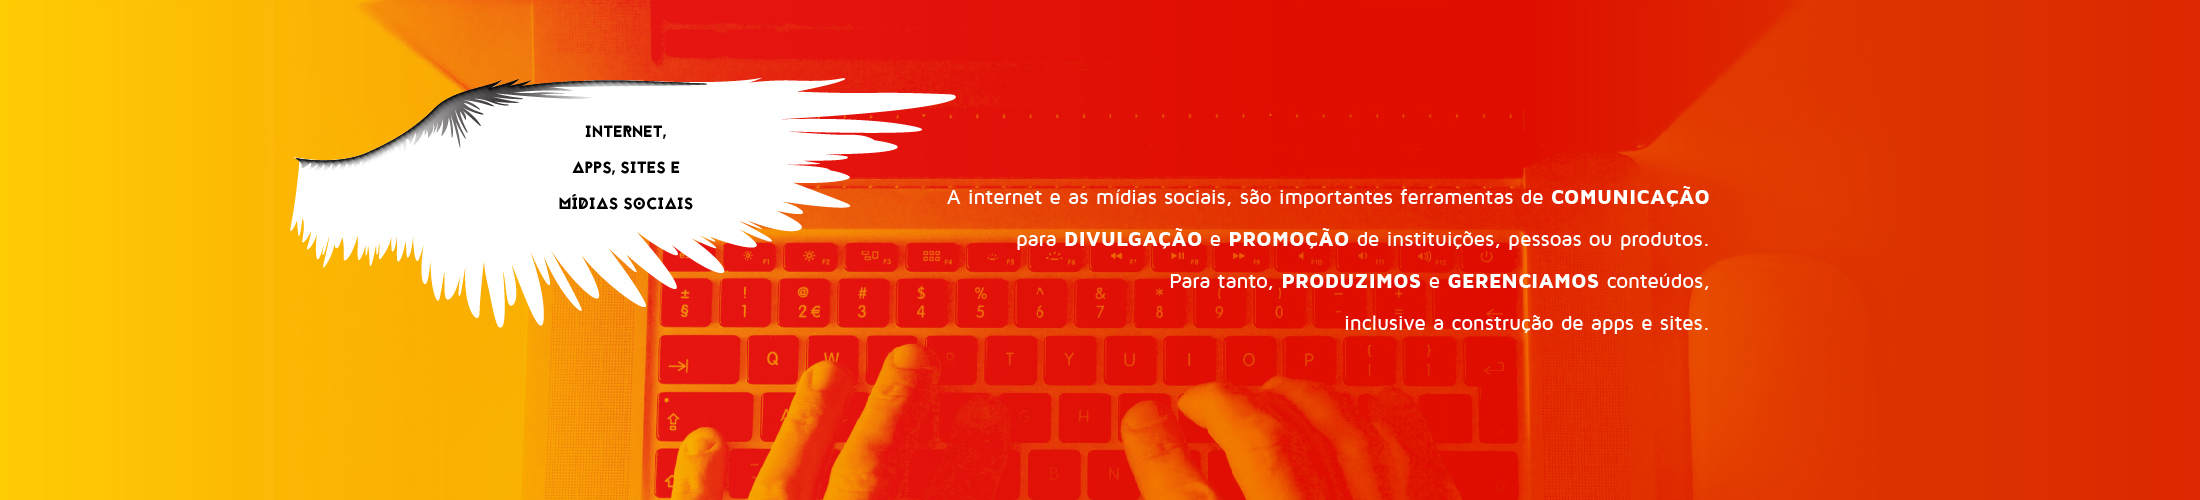 Internet, apps, sites e mídias sociais